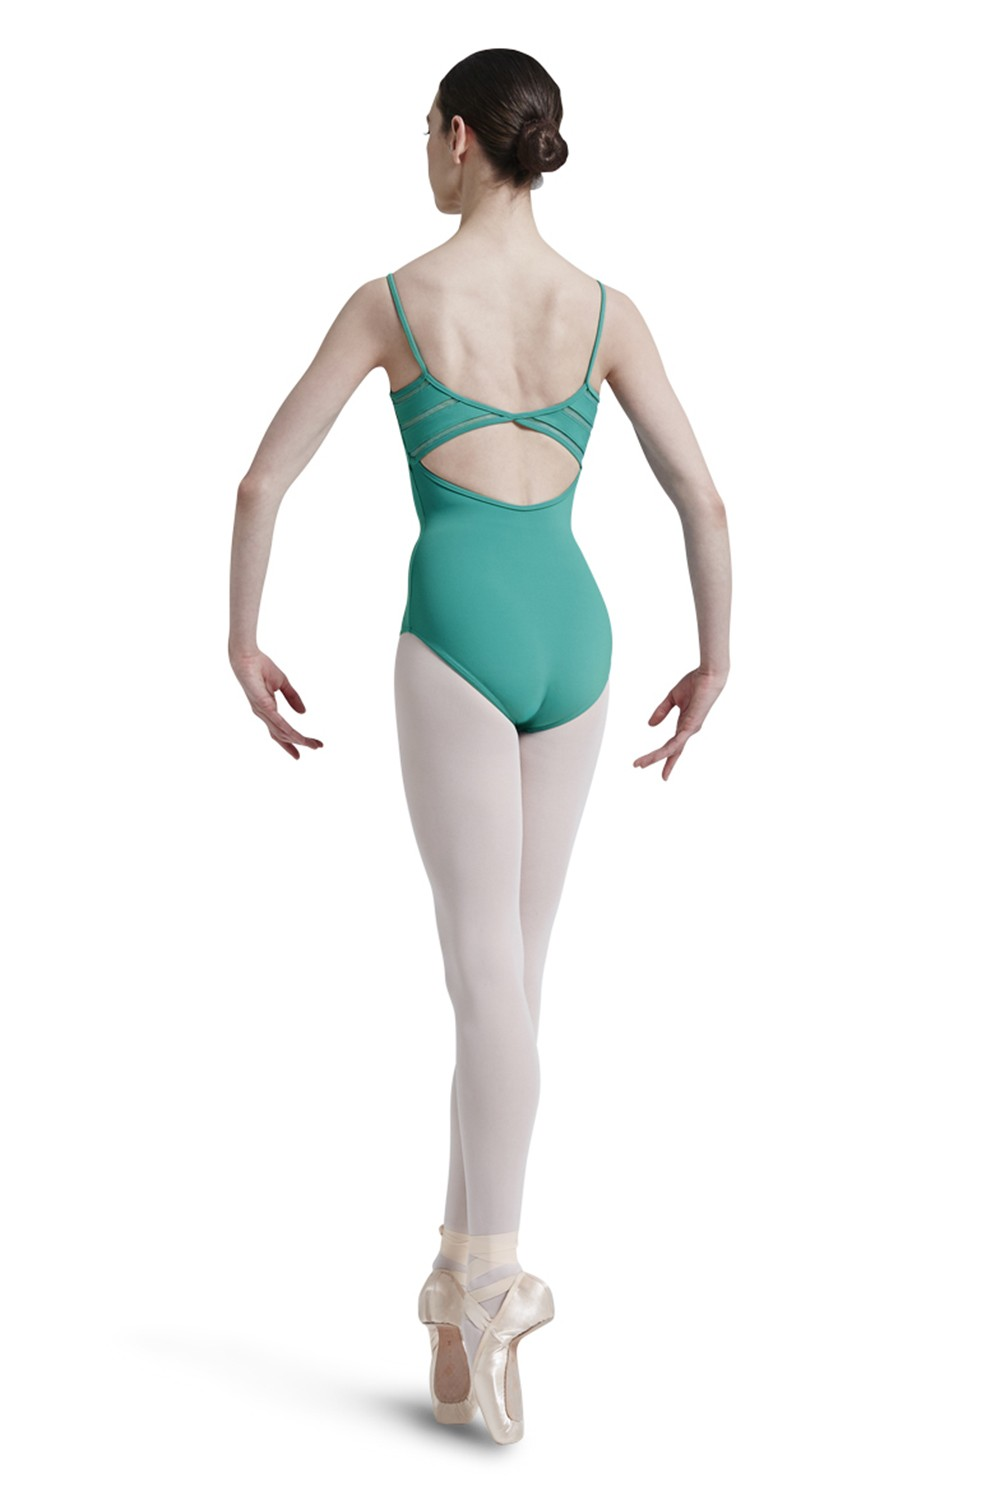 Body A Spallina Sottile Con Retro A Reticolo Women's Dance Leotards